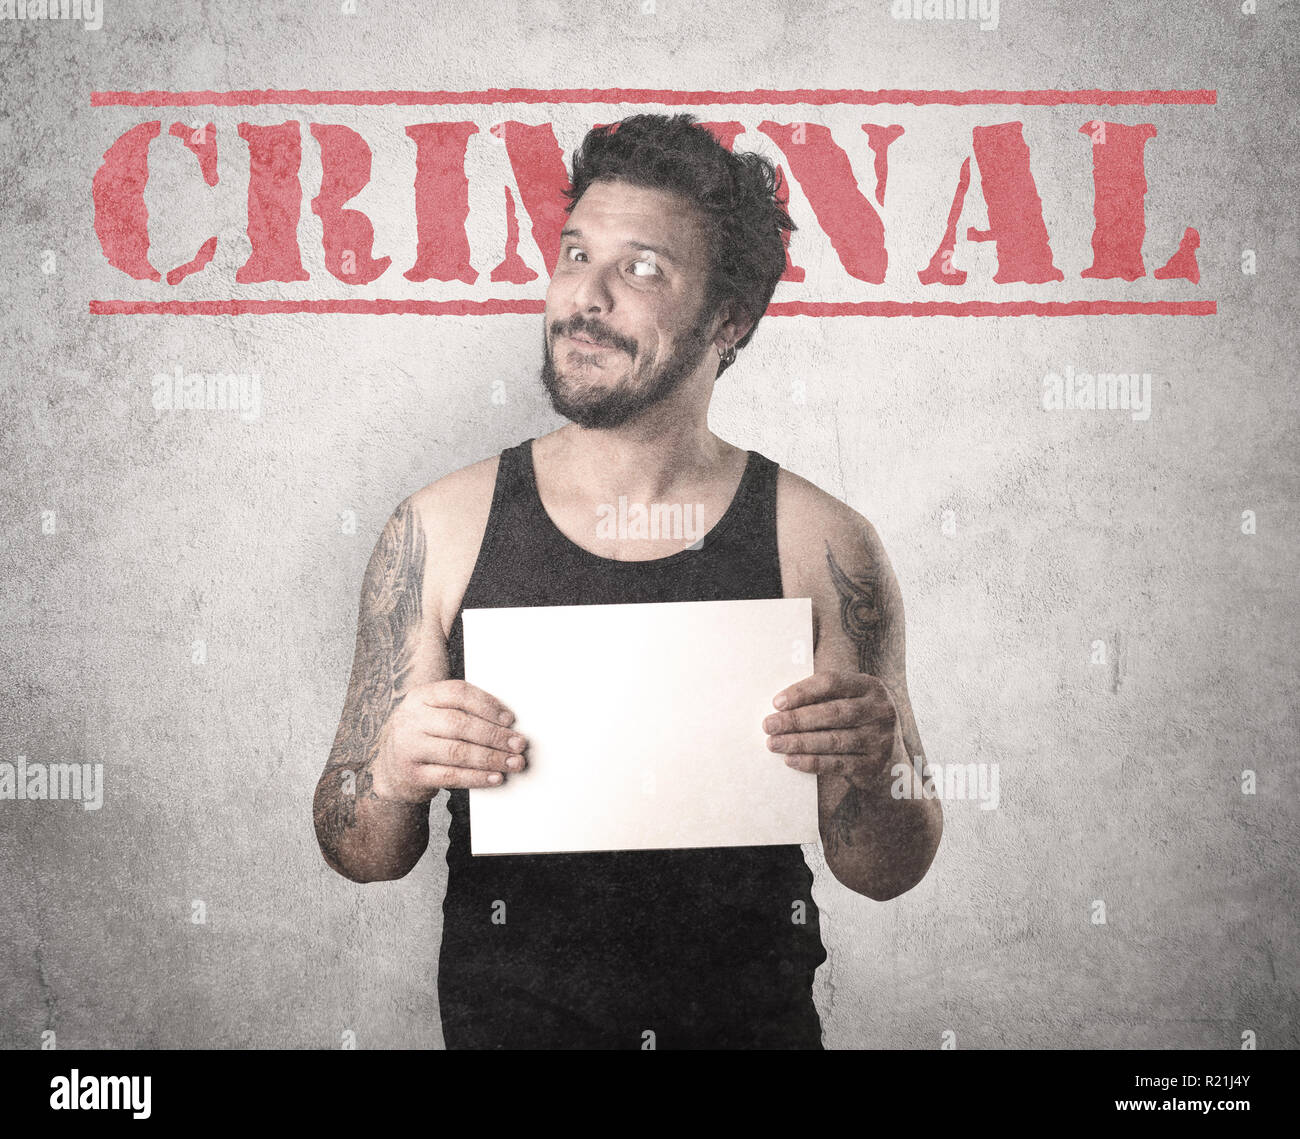 Caught gangster with criminal background. - Stock Image